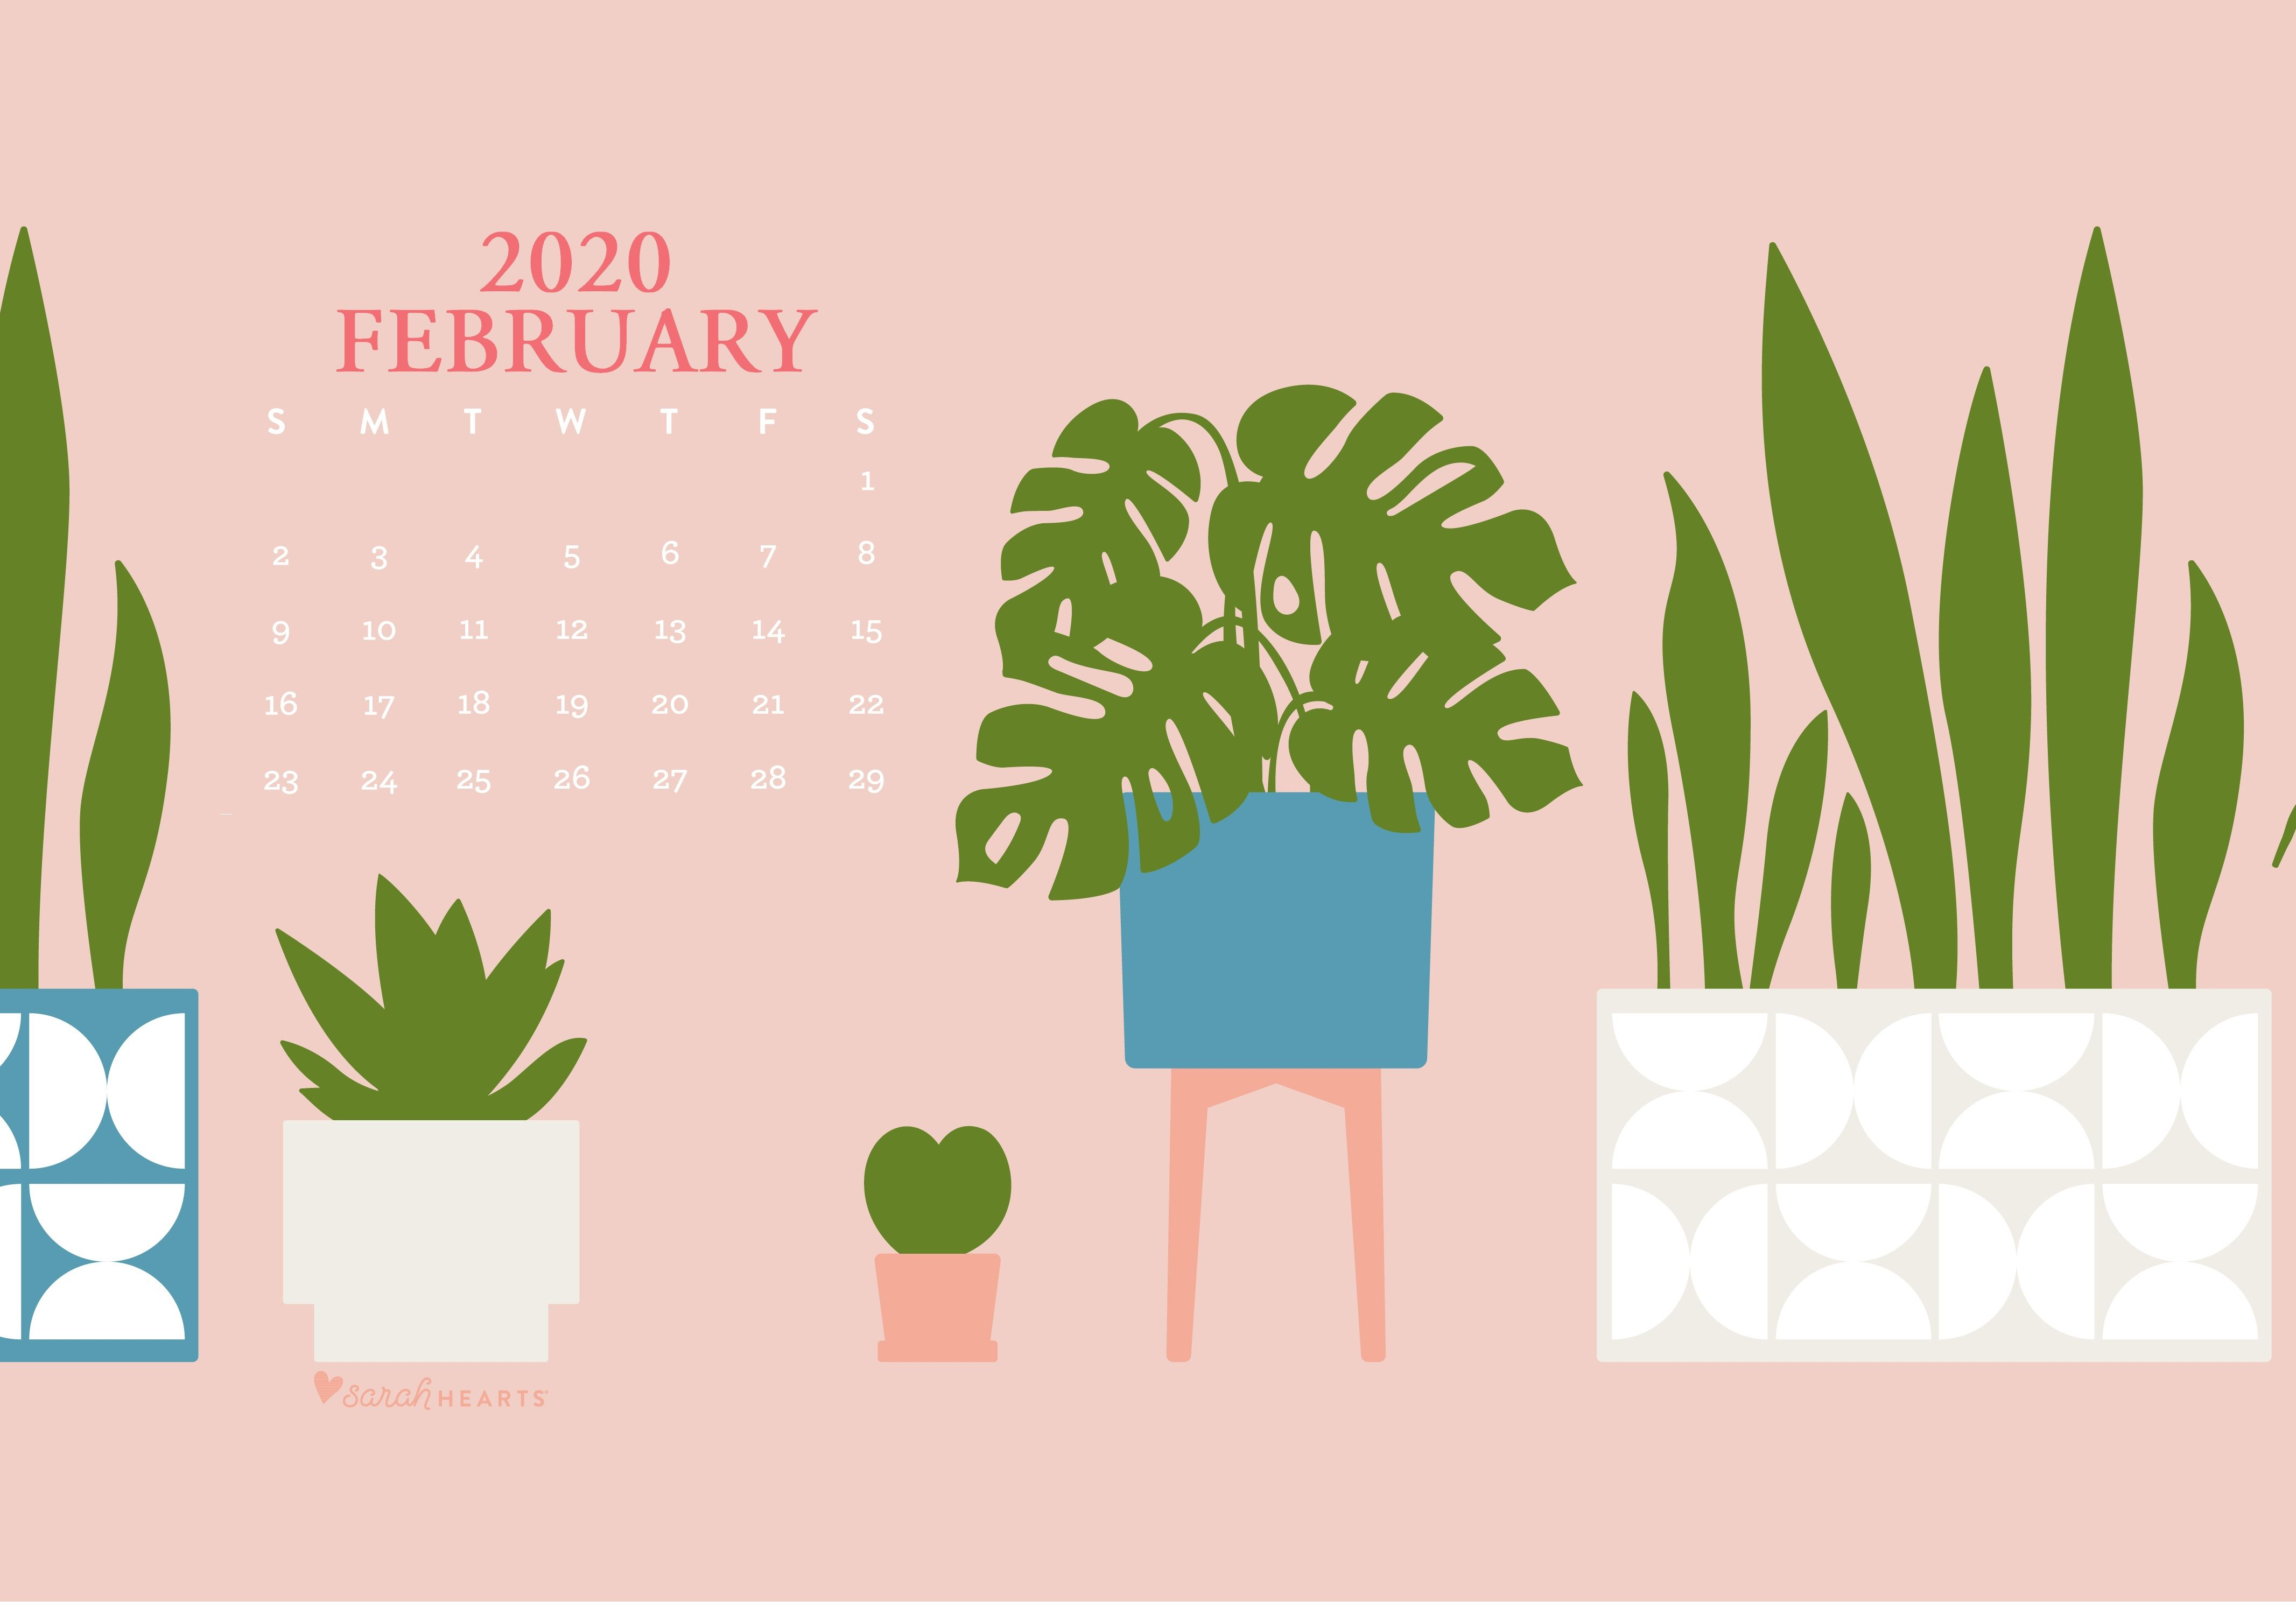 Cute February 2020 Desktop Screensaver In 2020 Calendar Wallpaper Desktop Wallpaper Calendar February Wallpaper